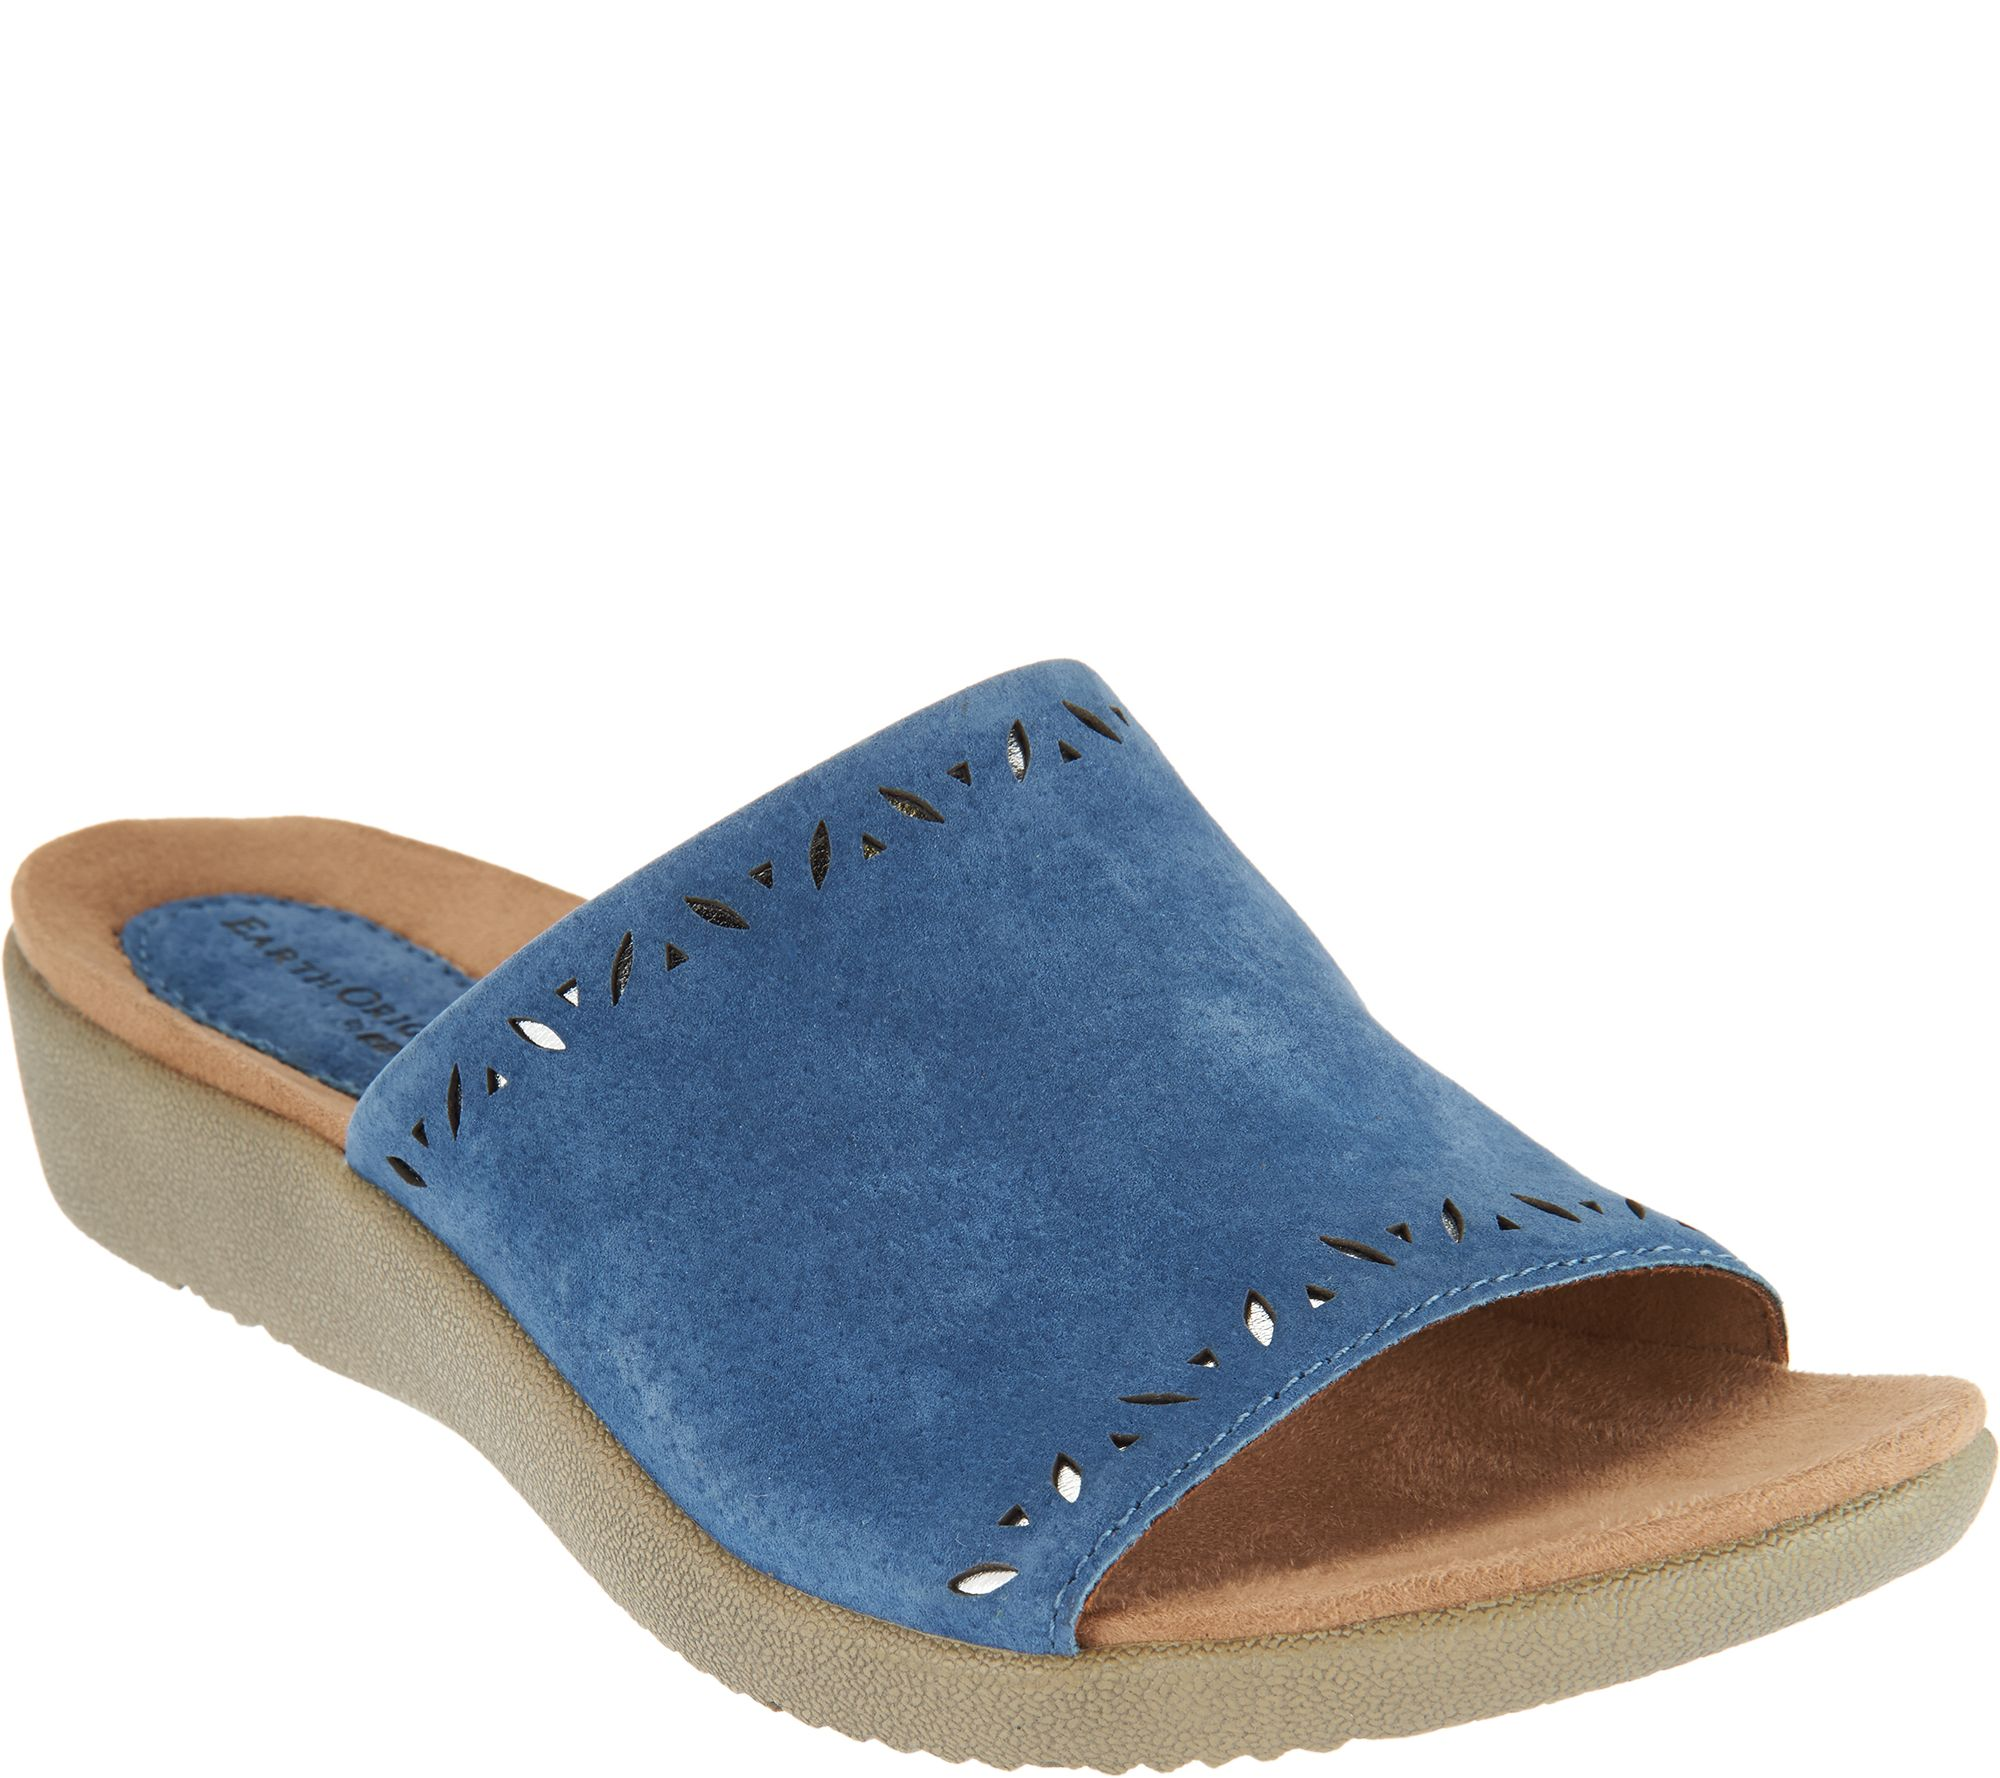 cdb45f35dfa9 Earth Origins Leather Slide Sandals - Valorie - Page 1 — QVC.com